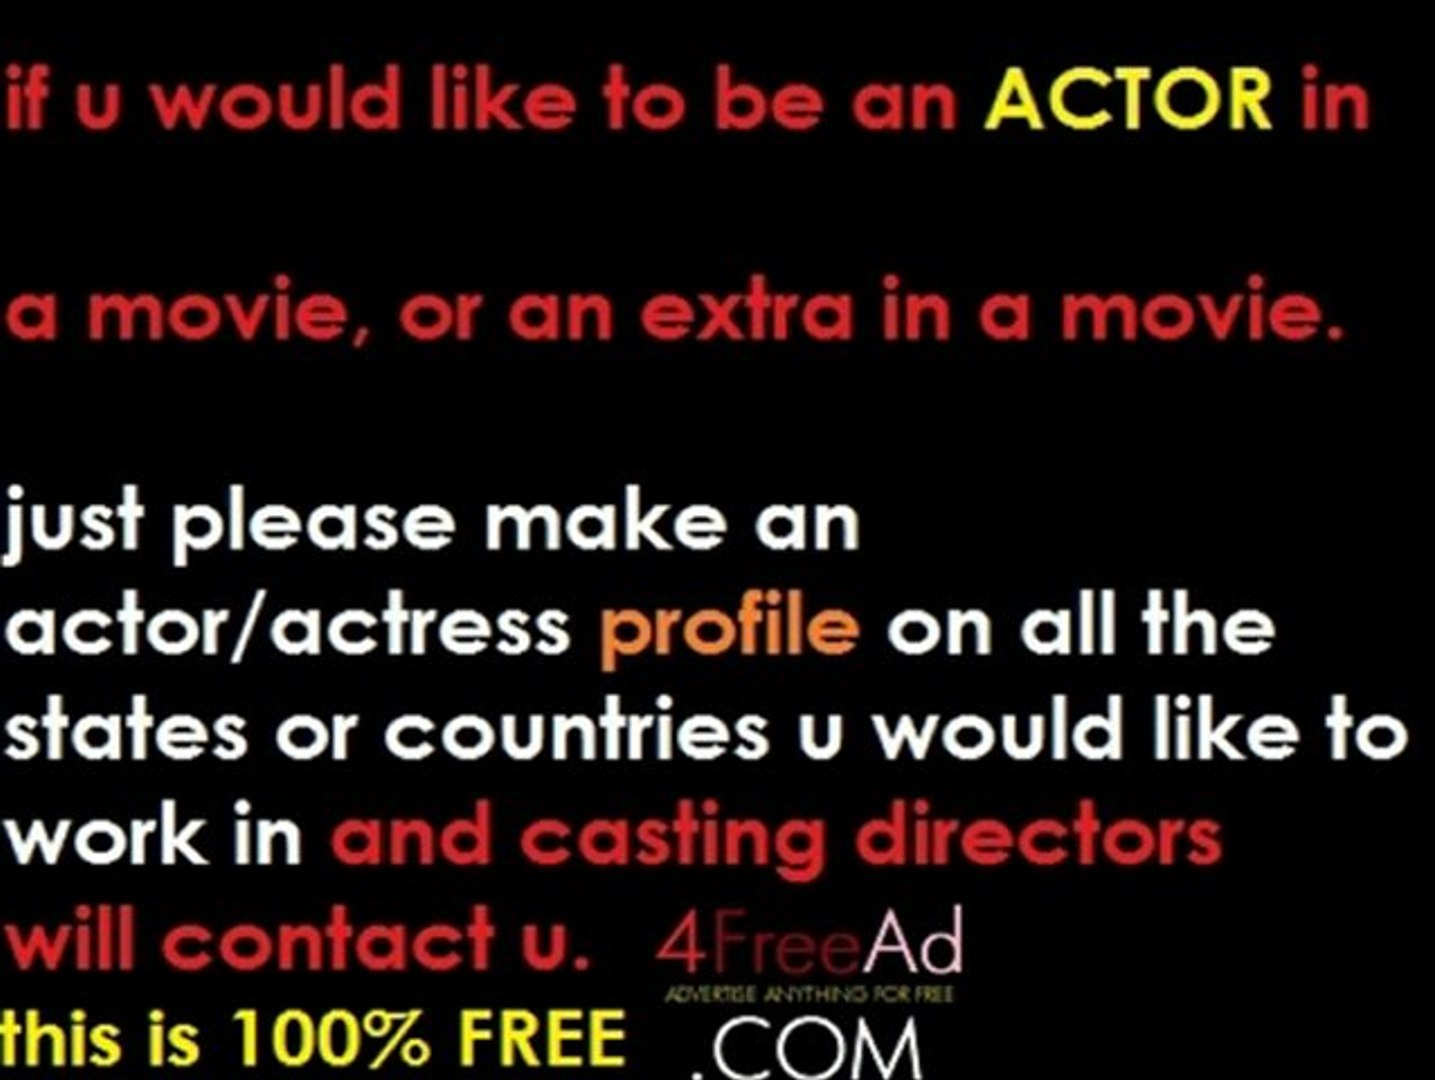 post free casting notices, advertise movie auditions for free, post a movie audition, casting call,